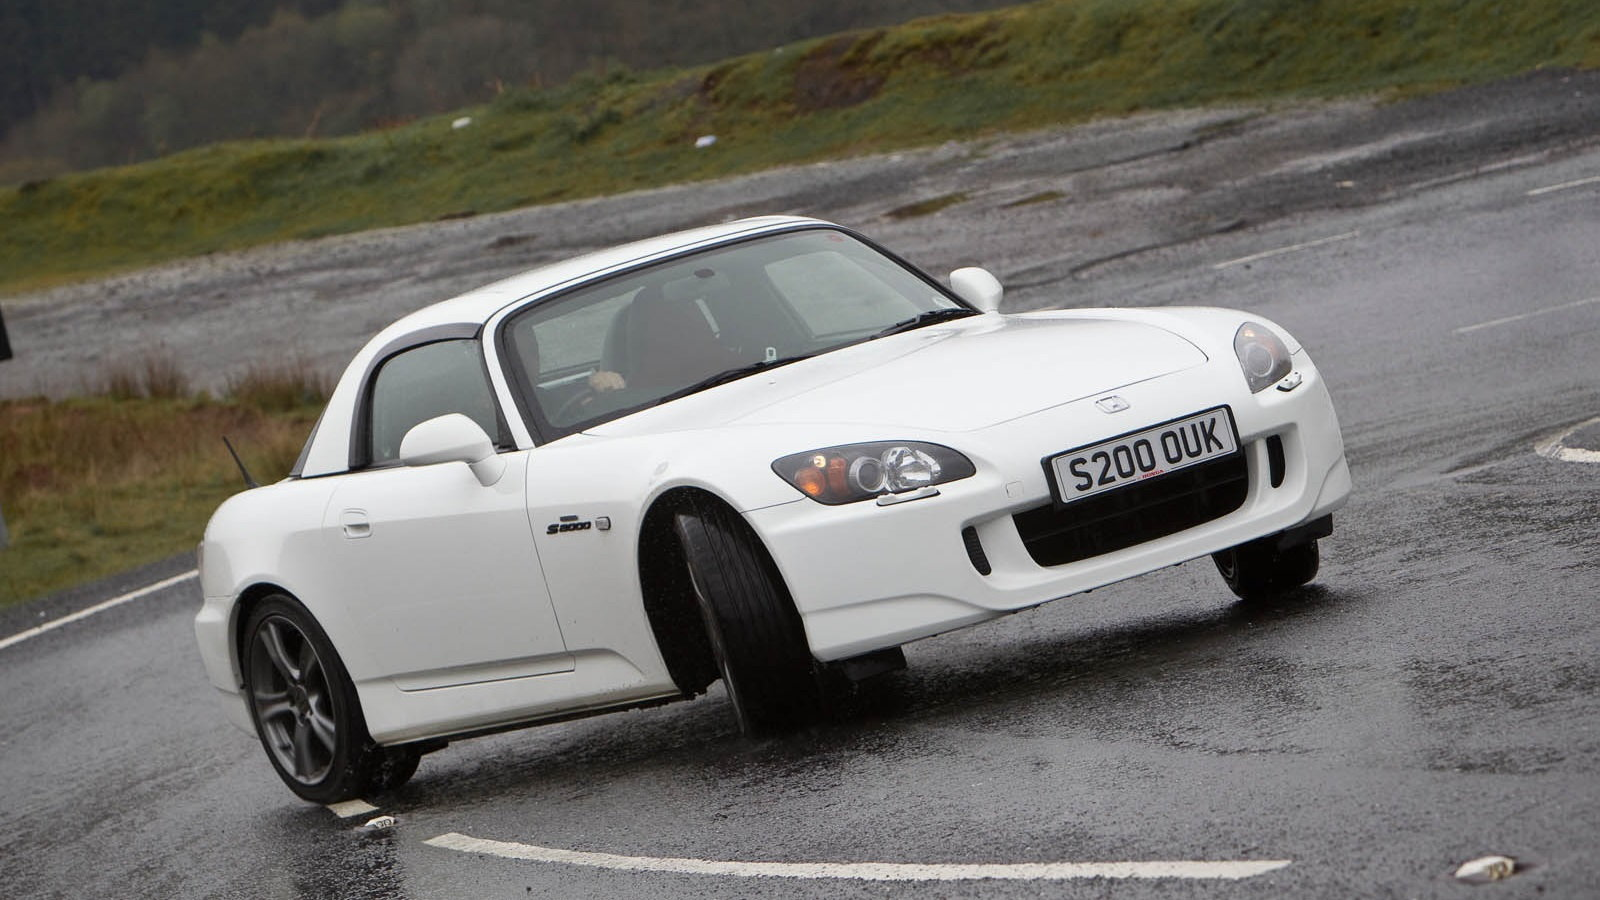 Is the S2000 Too Much for a First Car?